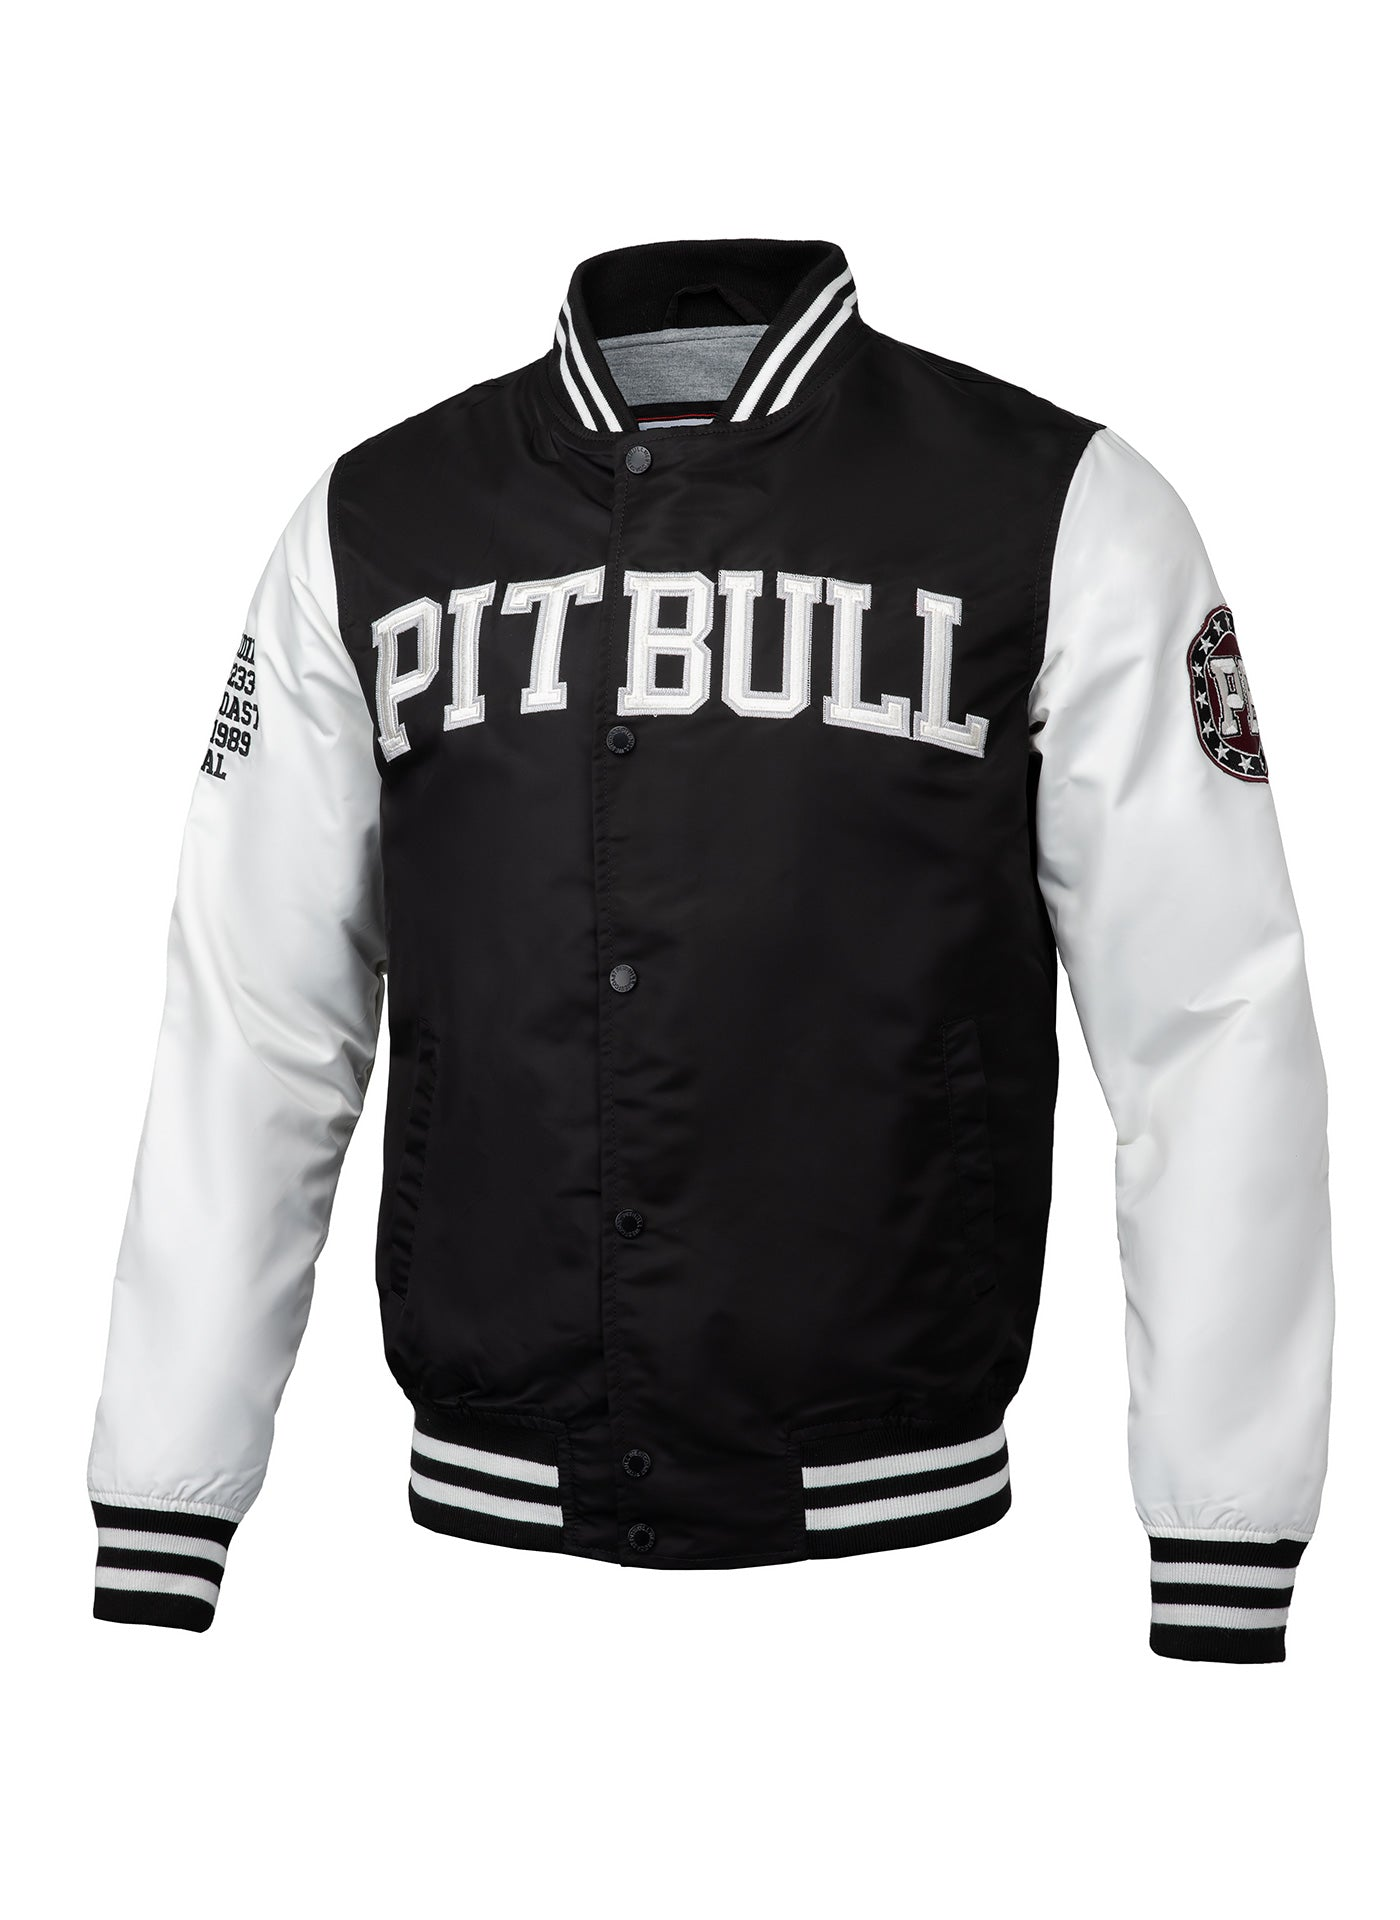 Varsity Jacket WILSON Black - Pitbull West Coast U.S.A.